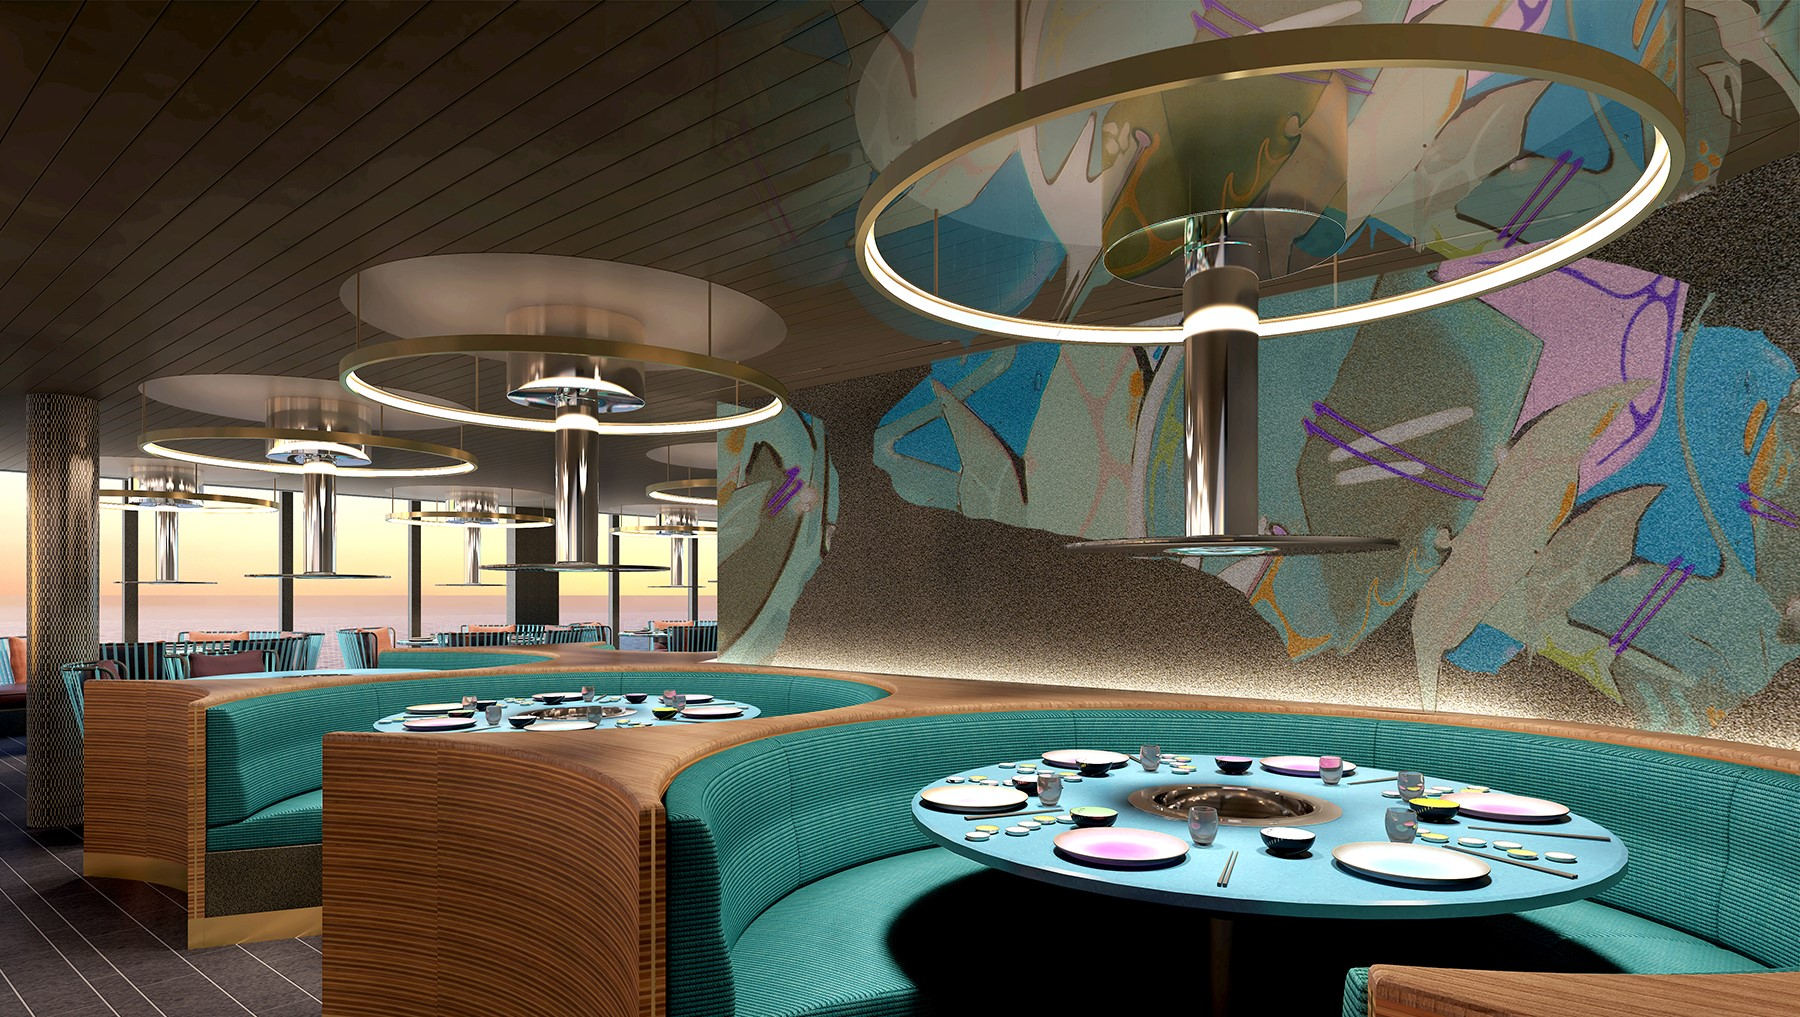 Halton To Deliver Design Hoods For A New Luxury Cruise Ship